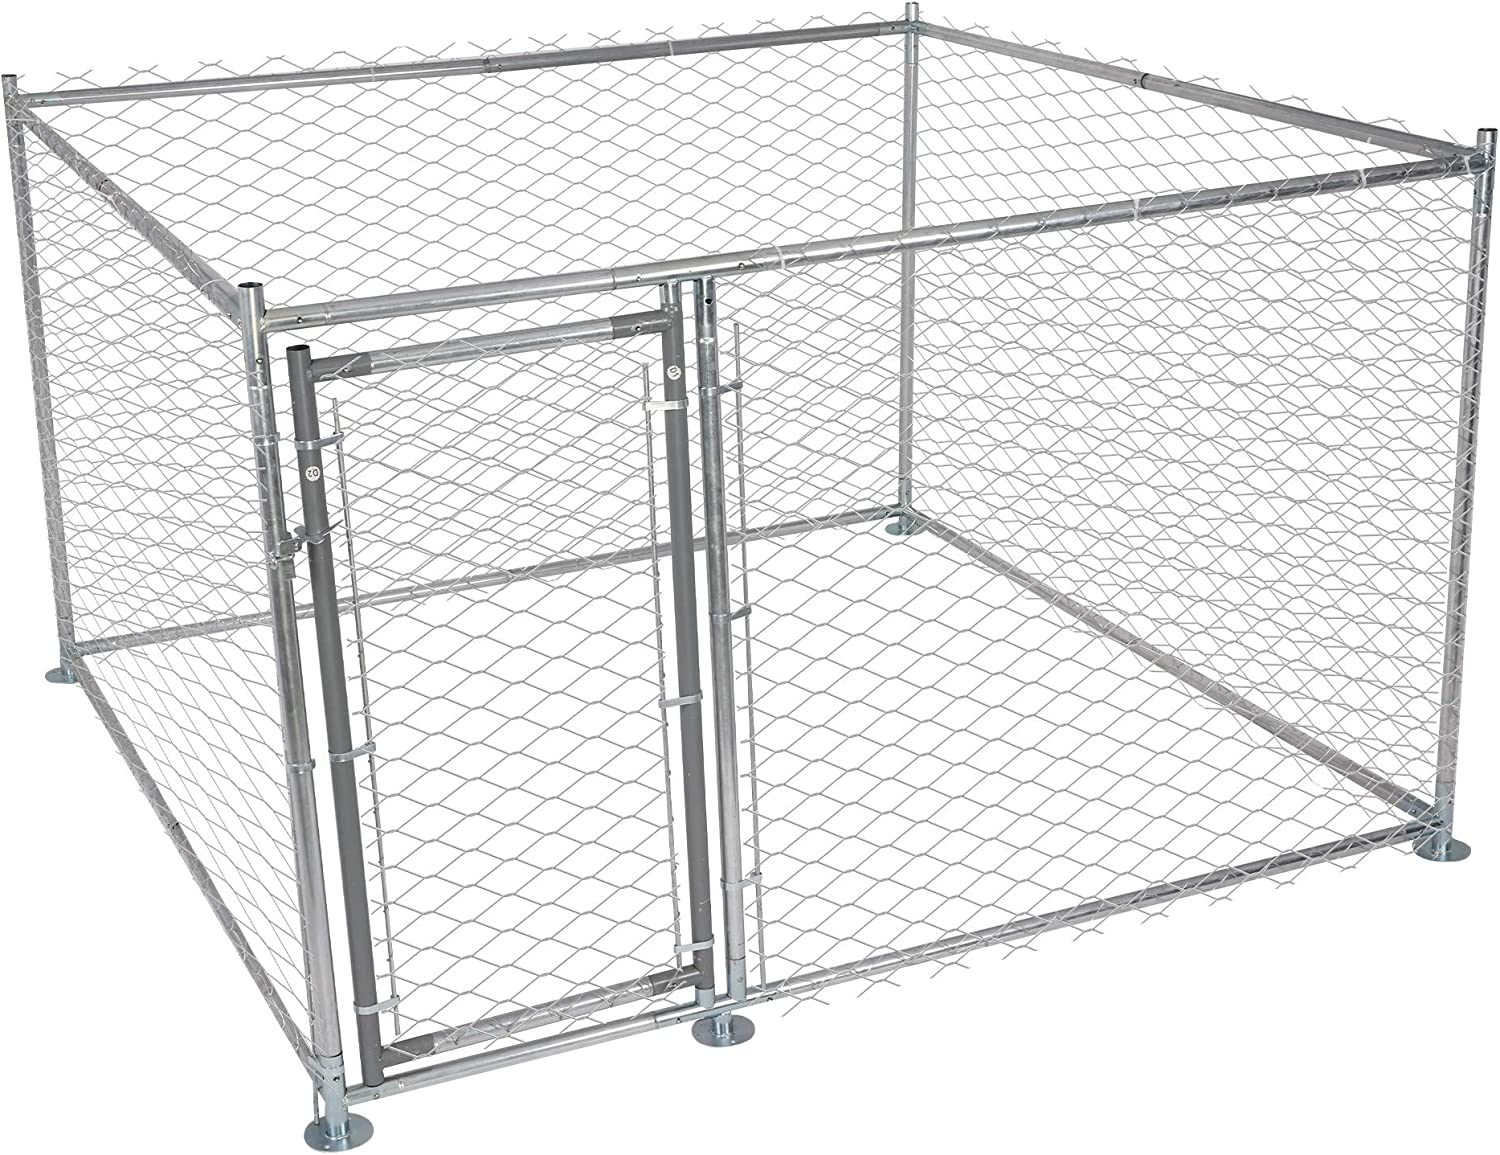 LUCKYERMORE Metal Dog Kennel Outdoor Clea Easy to Our shop most popular for Large New mail order